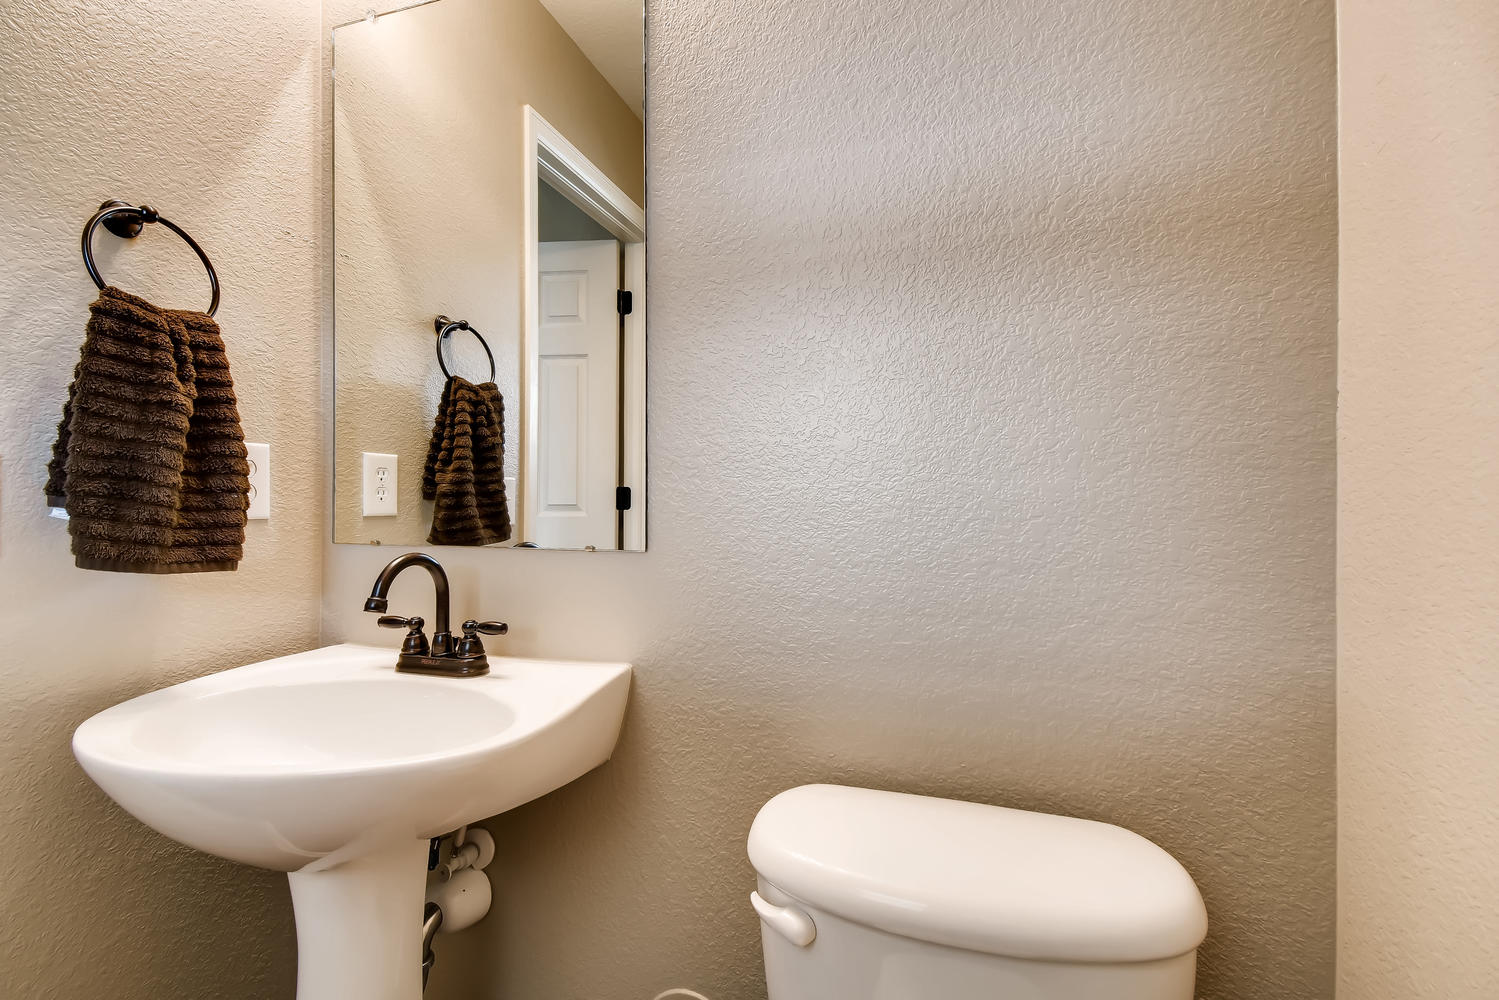 REAL ESTATE LISTING: 10595 Forester Pl Longmont CO Powder Room